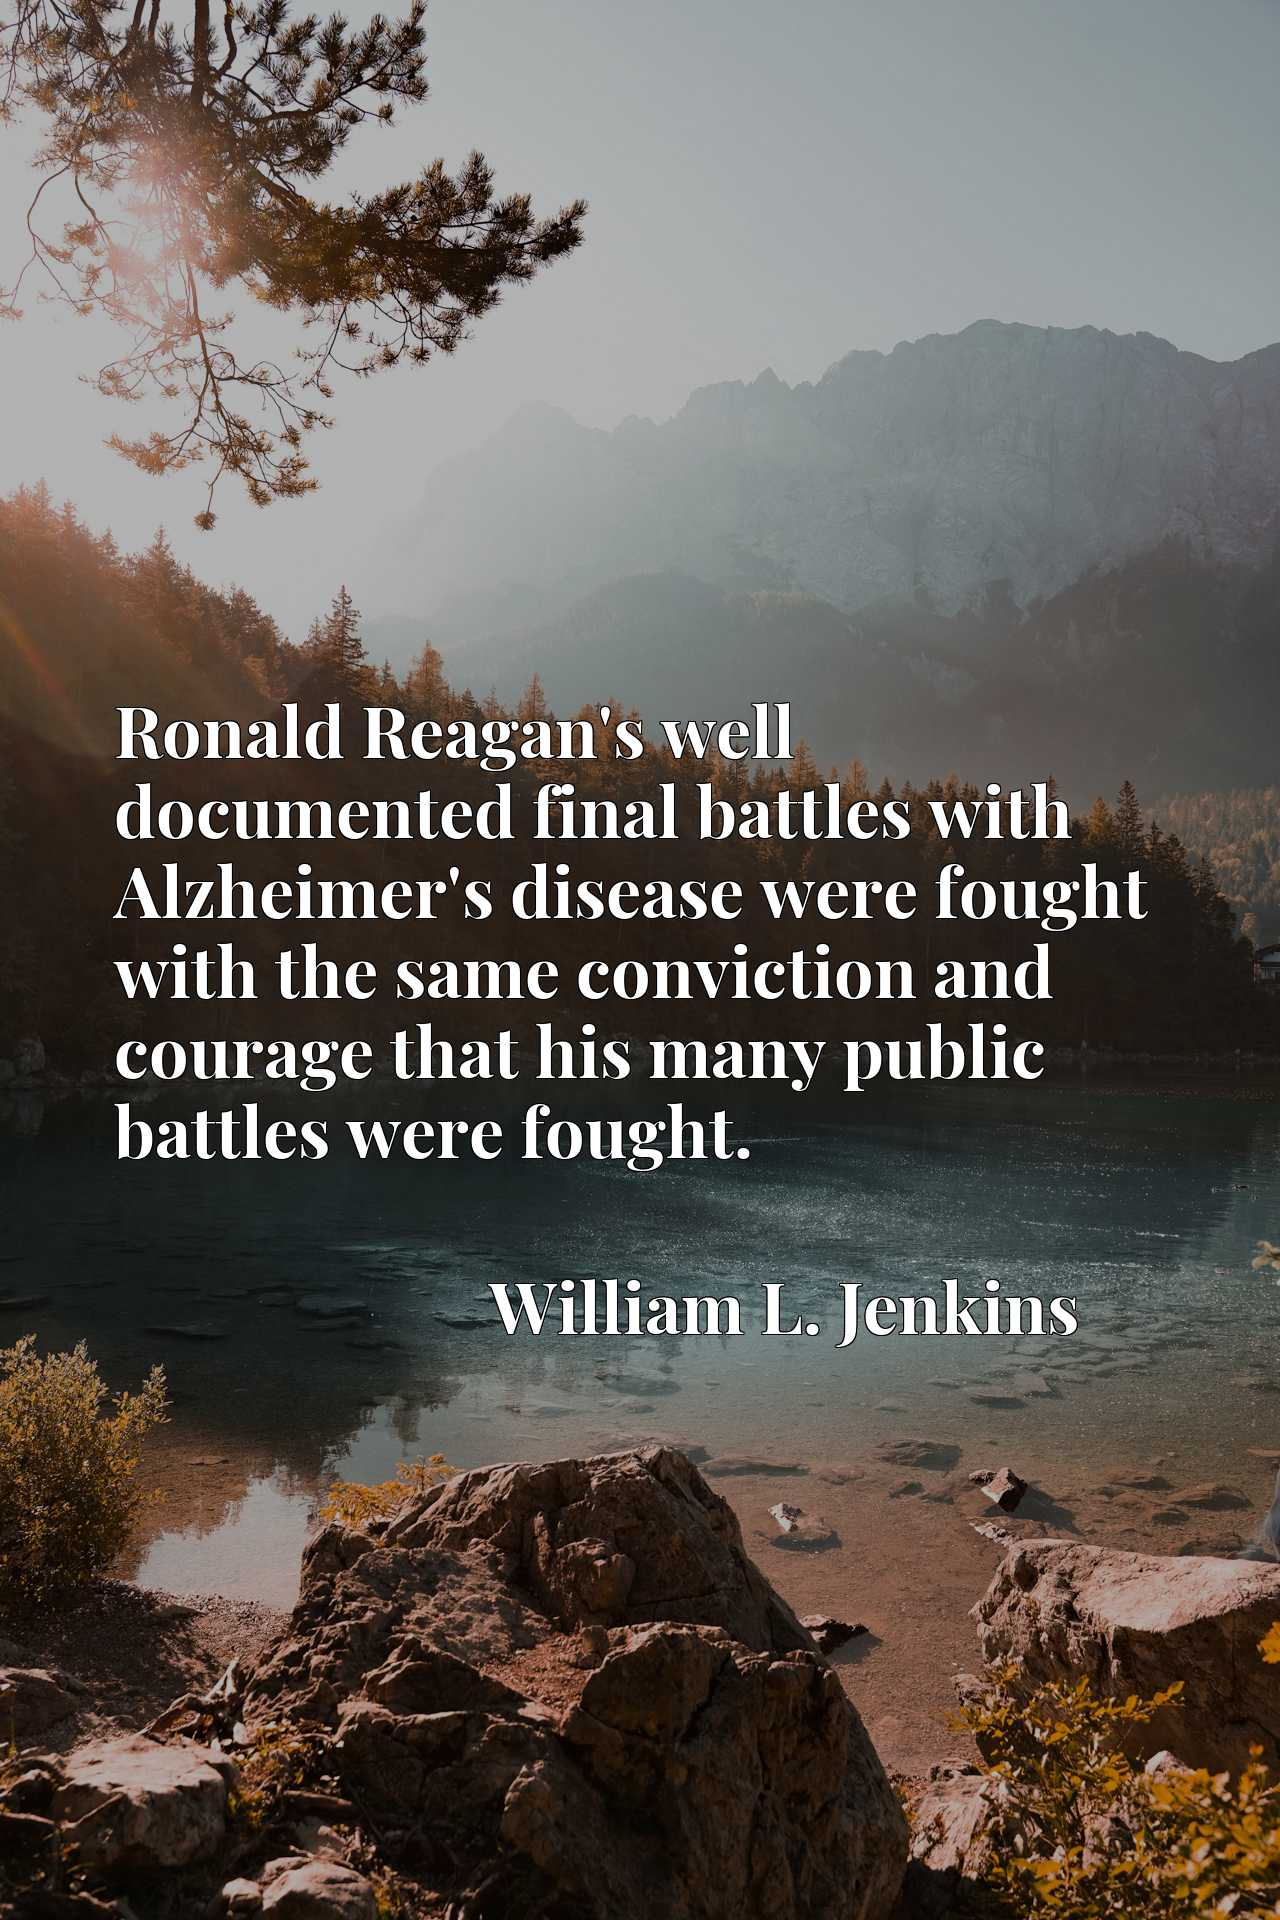 Ronald Reagan's well documented final battles with Alzheimer's disease were fought with the same conviction and courage that his many public battles were fought.